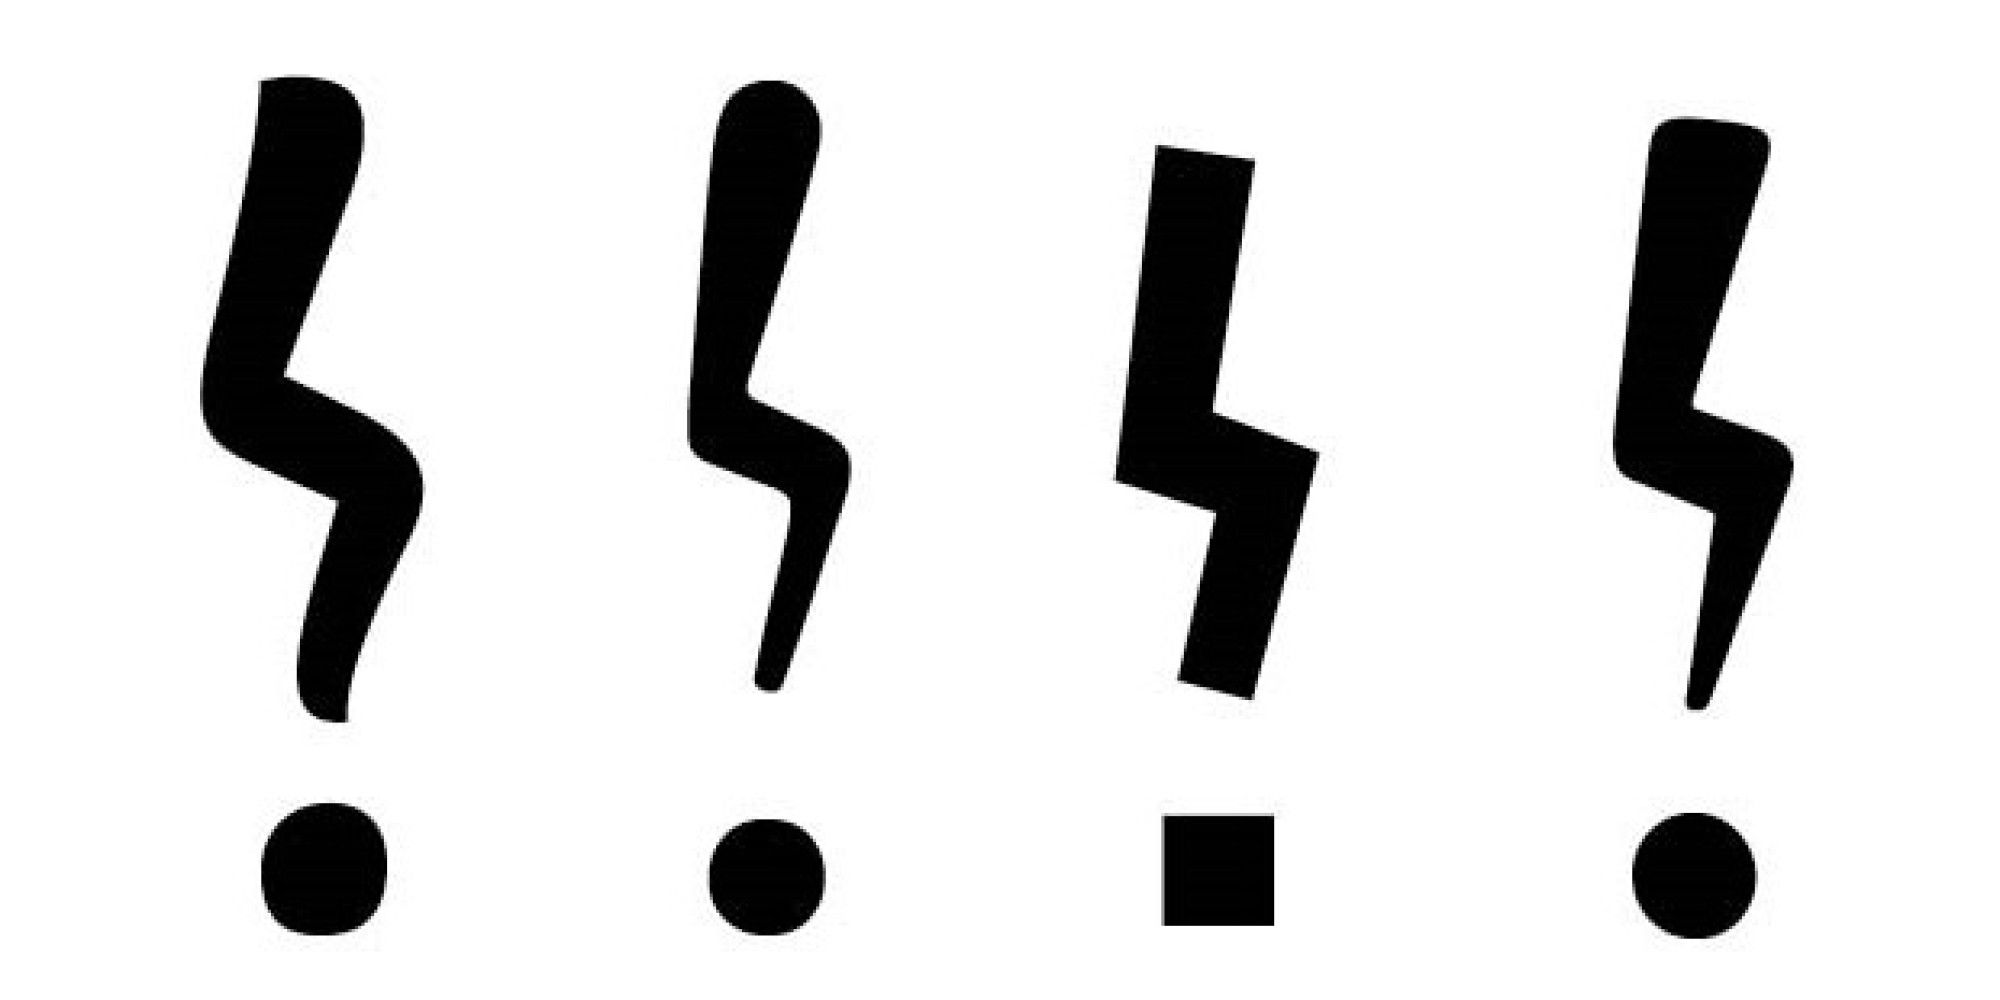 8 Punctuation Marks That Are Now Extinct